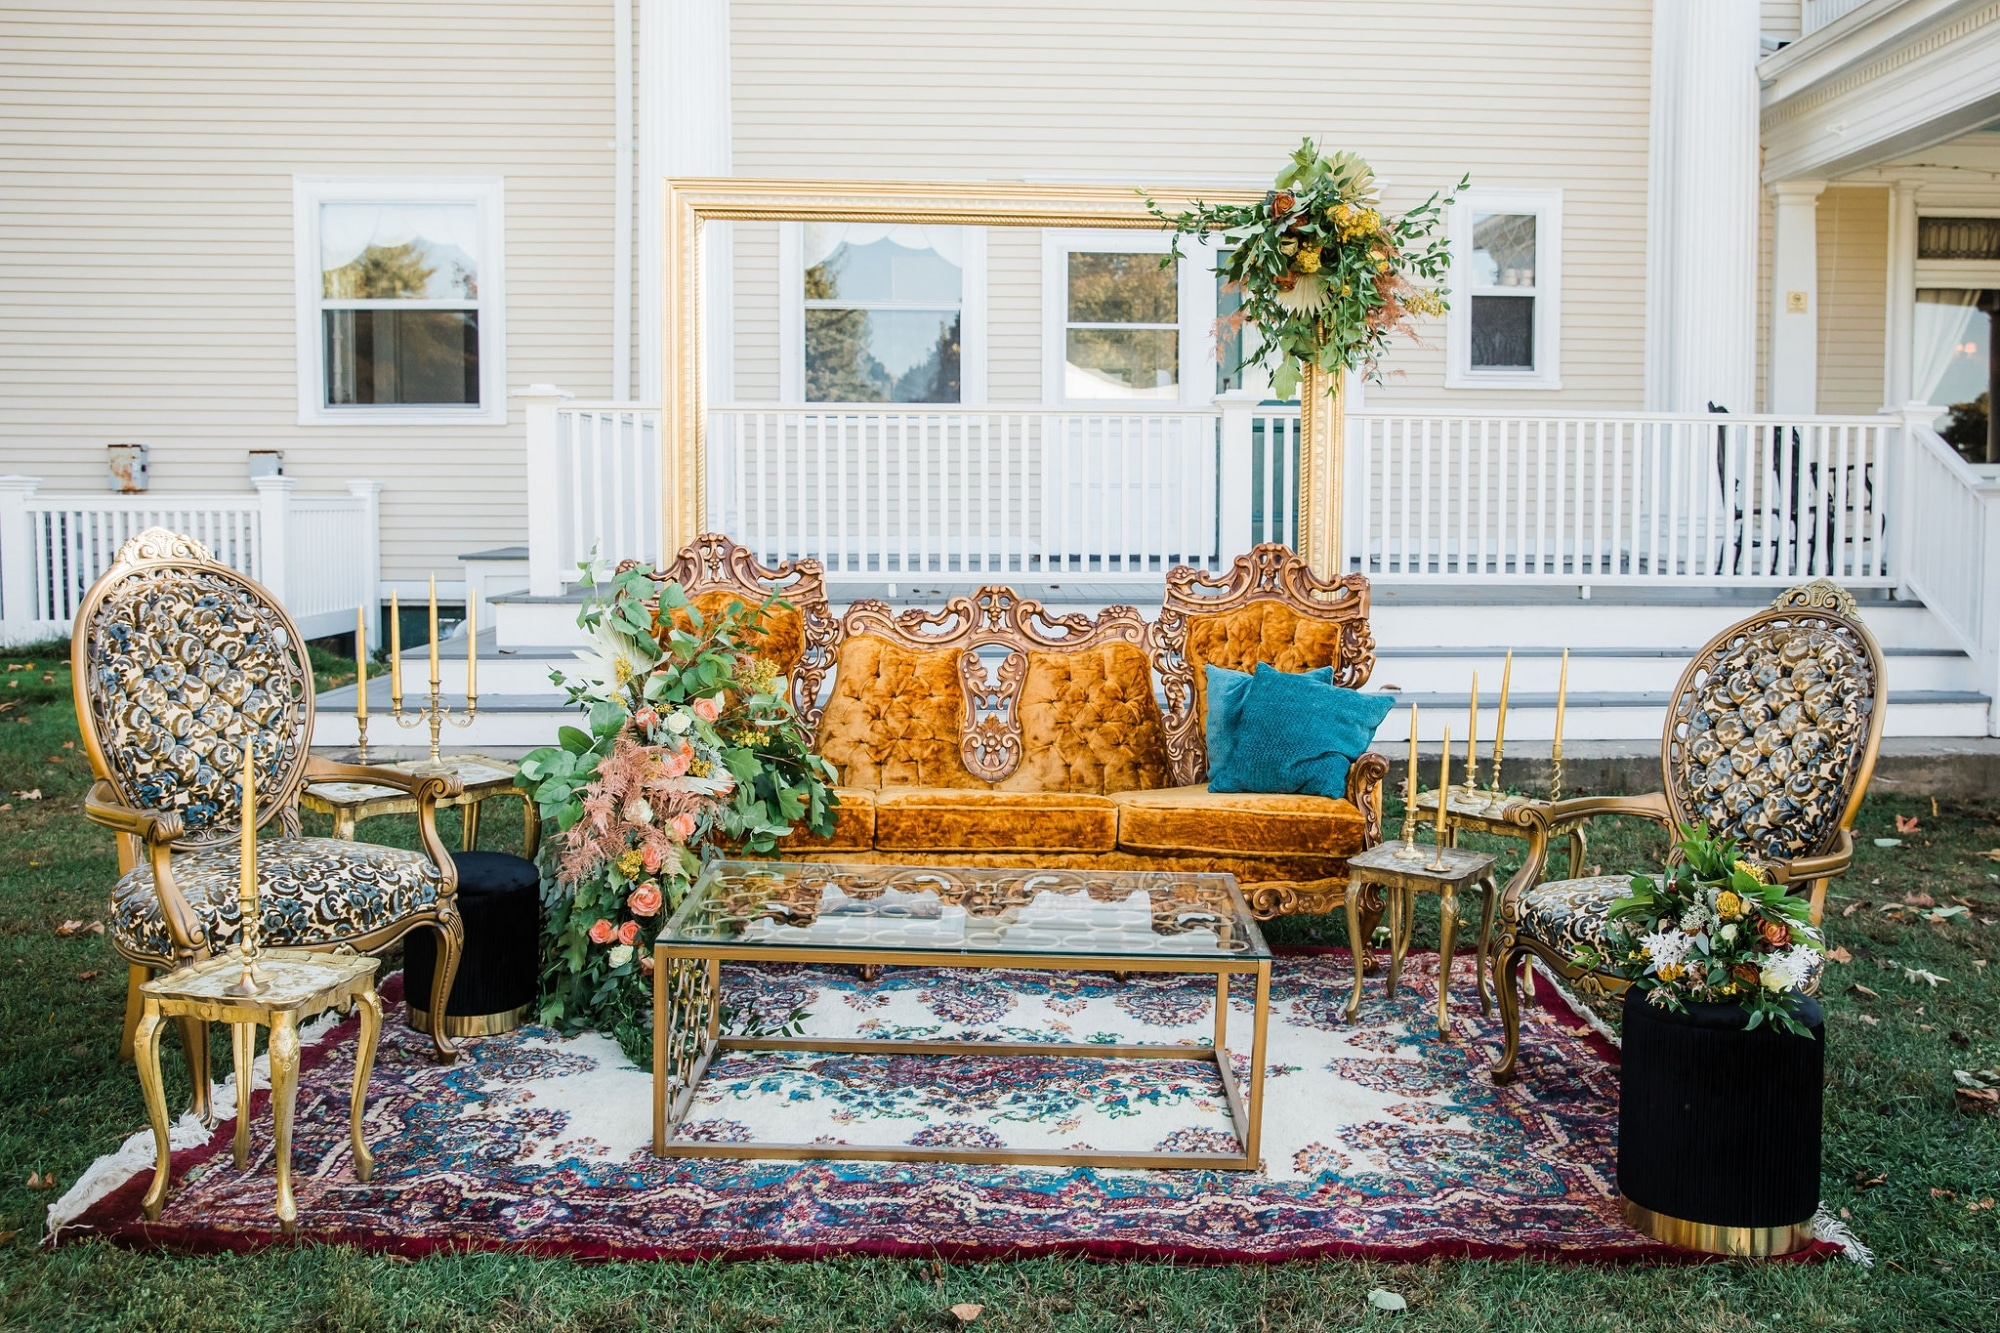 vintage furniture with copper an blue and fall tones with floral all around a seating area